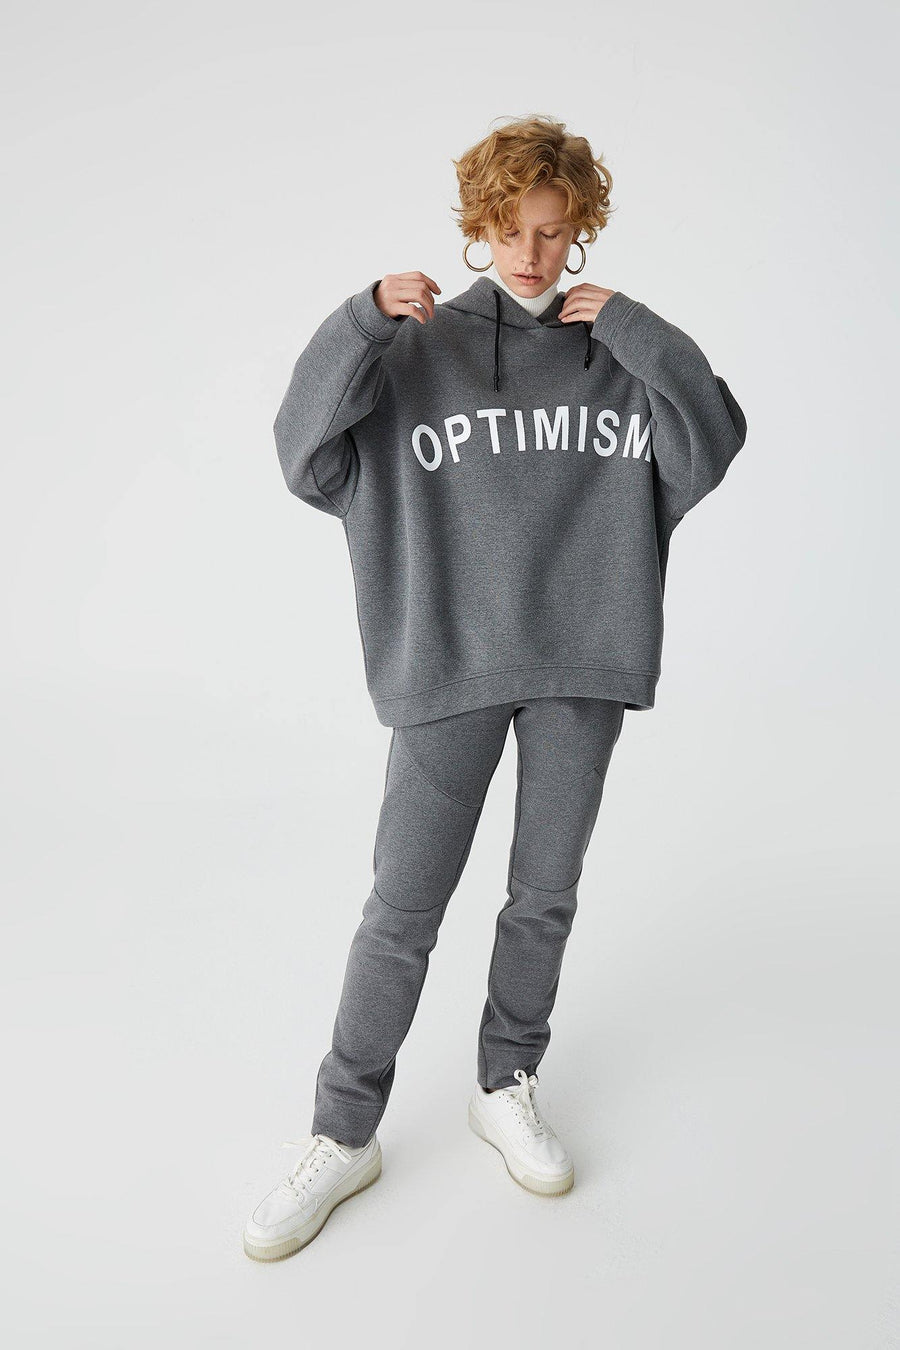 Optimism Sweatshirt